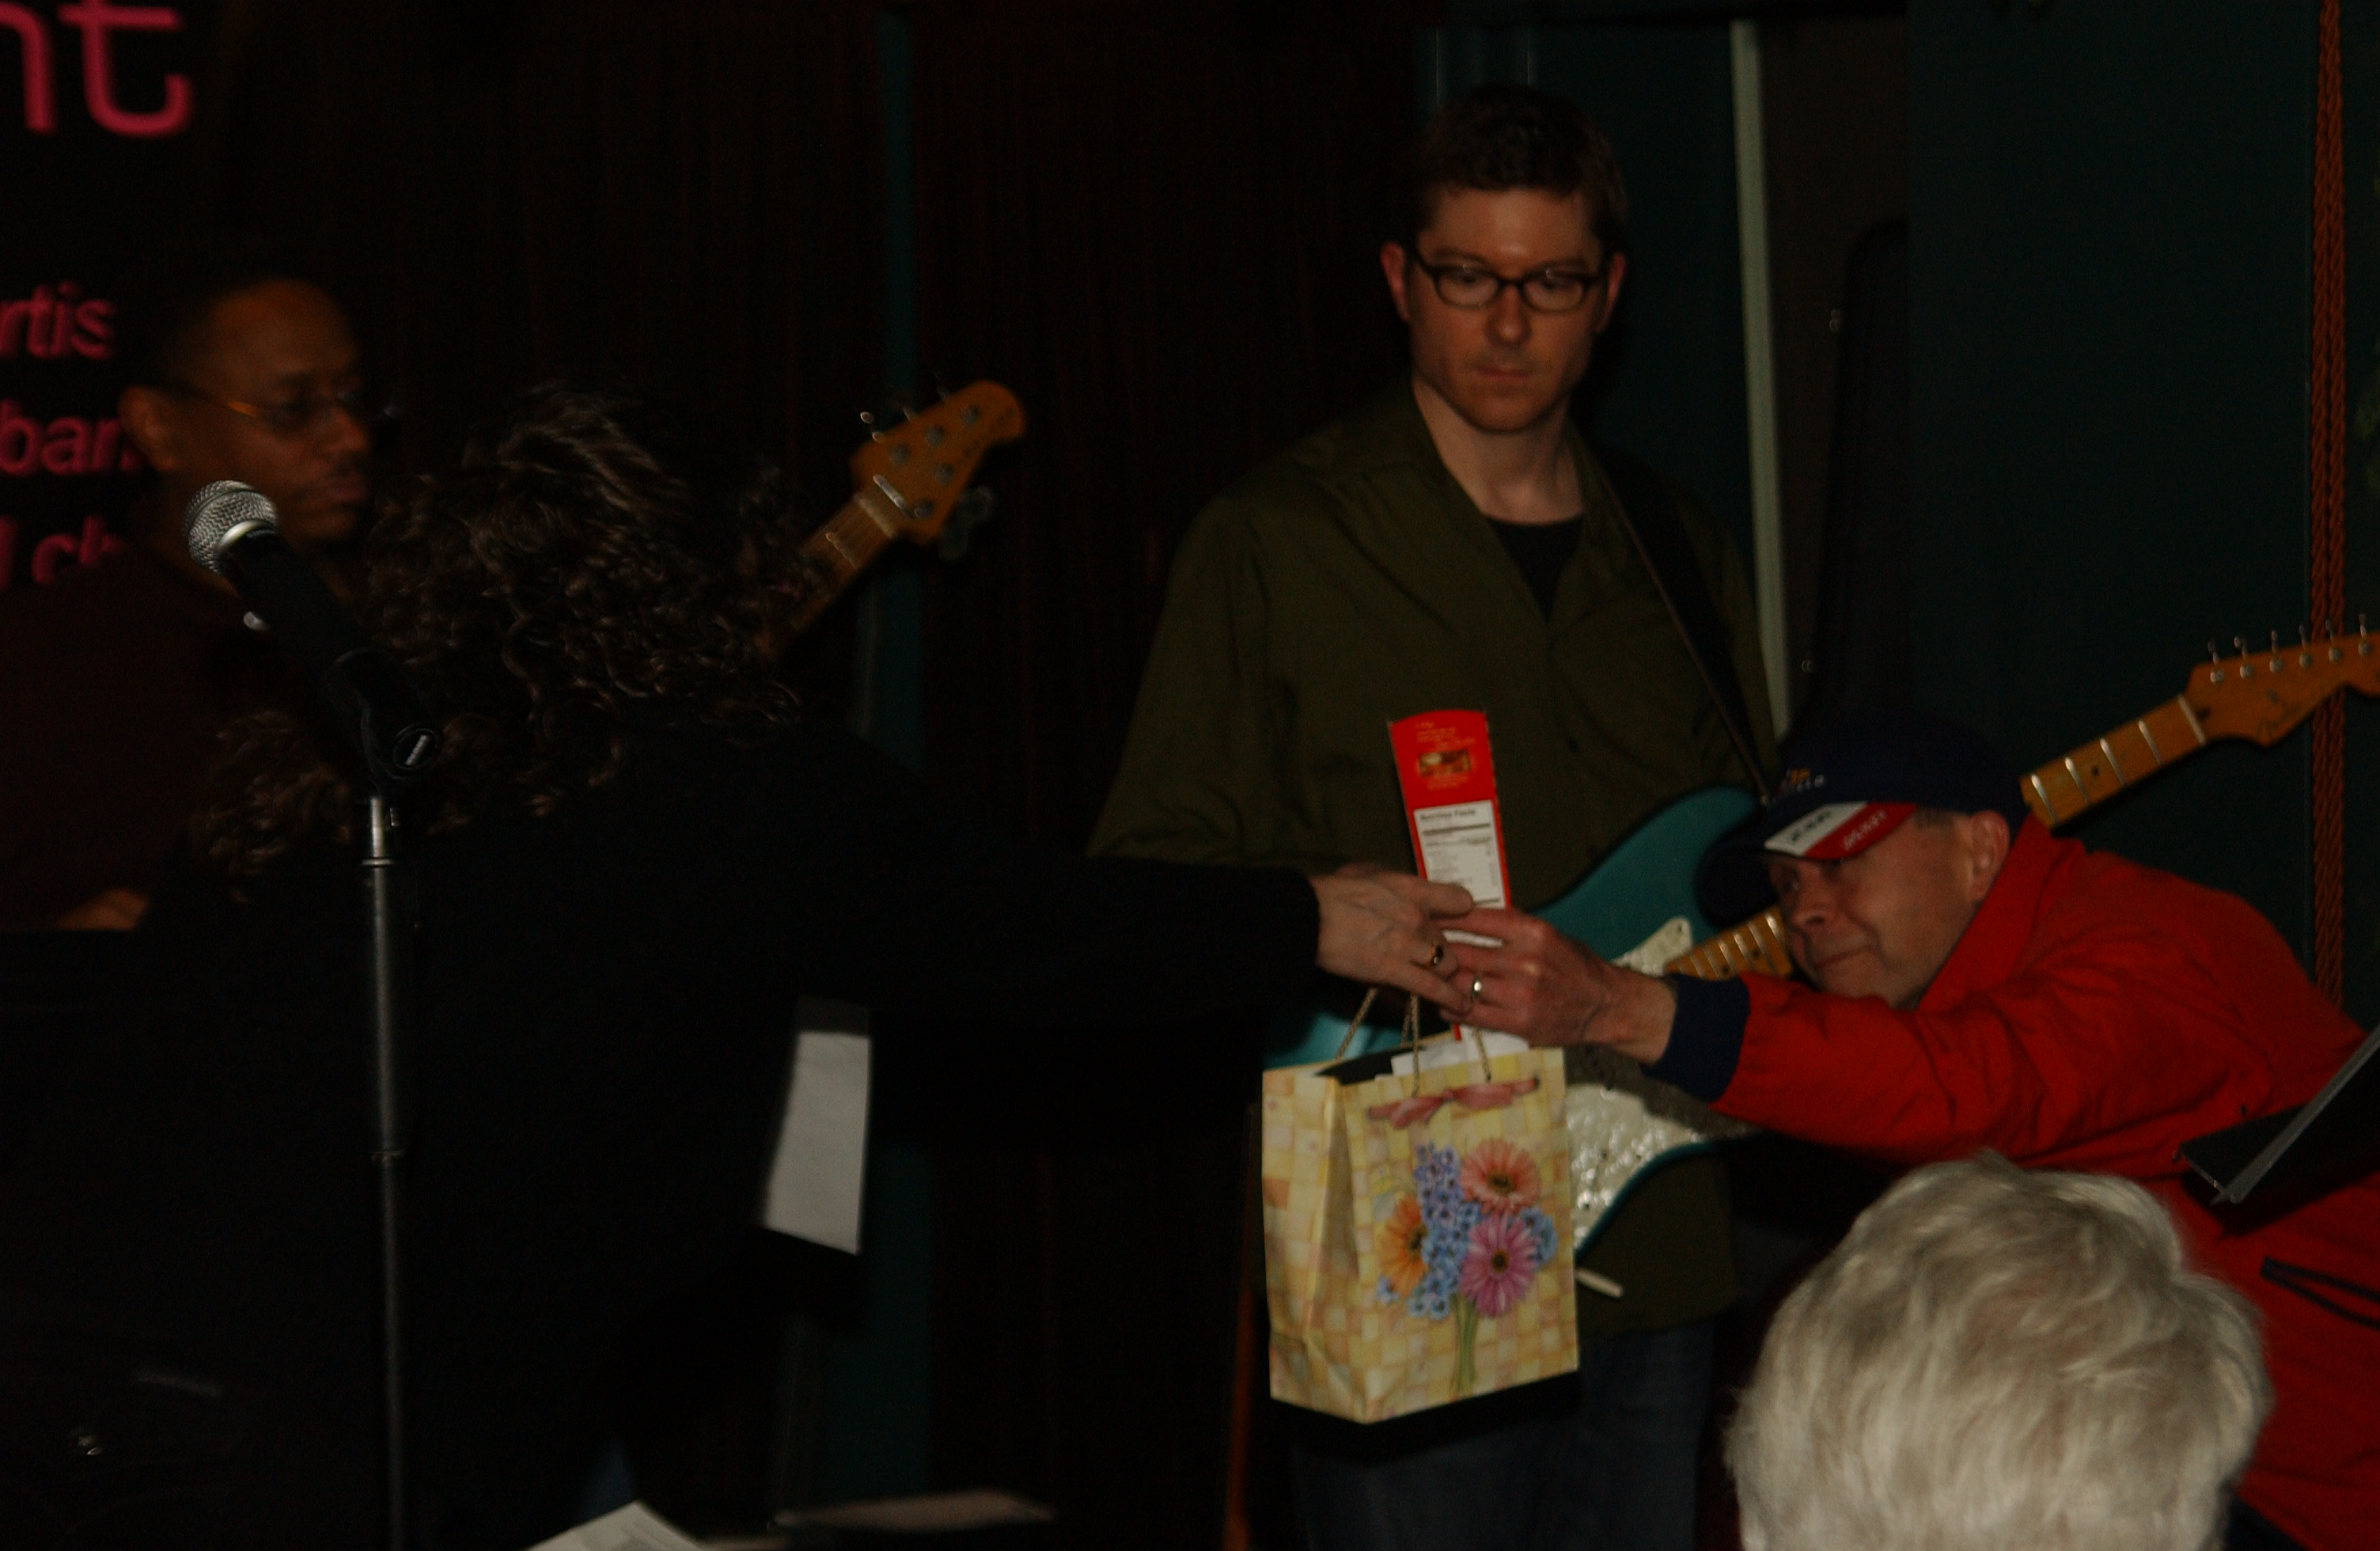 Bob Maleske receiving his prize. He was also one of the top 5 in 2008.